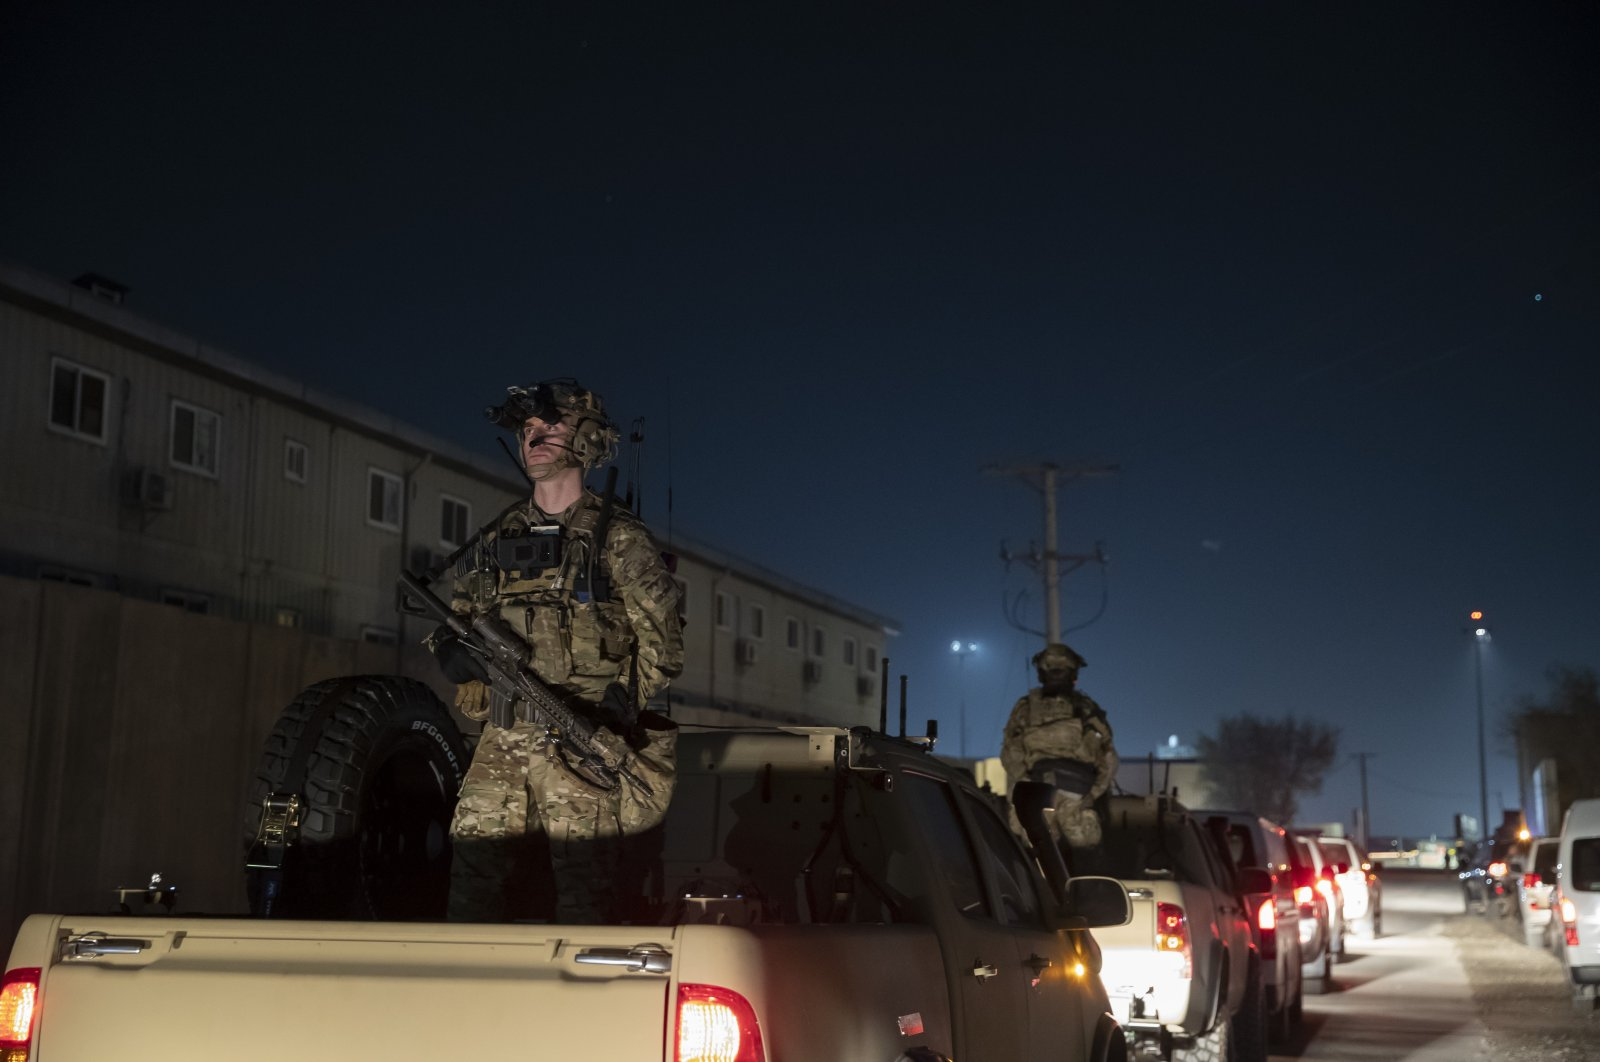 Armed soldiers stand guard in the motorcade for President Donald Trump as he speaks during a surprise Thanksgiving Day visit to the troops at Bagram Air Field, Afghanistan, Nov. 28, 2019. (AP Photo)